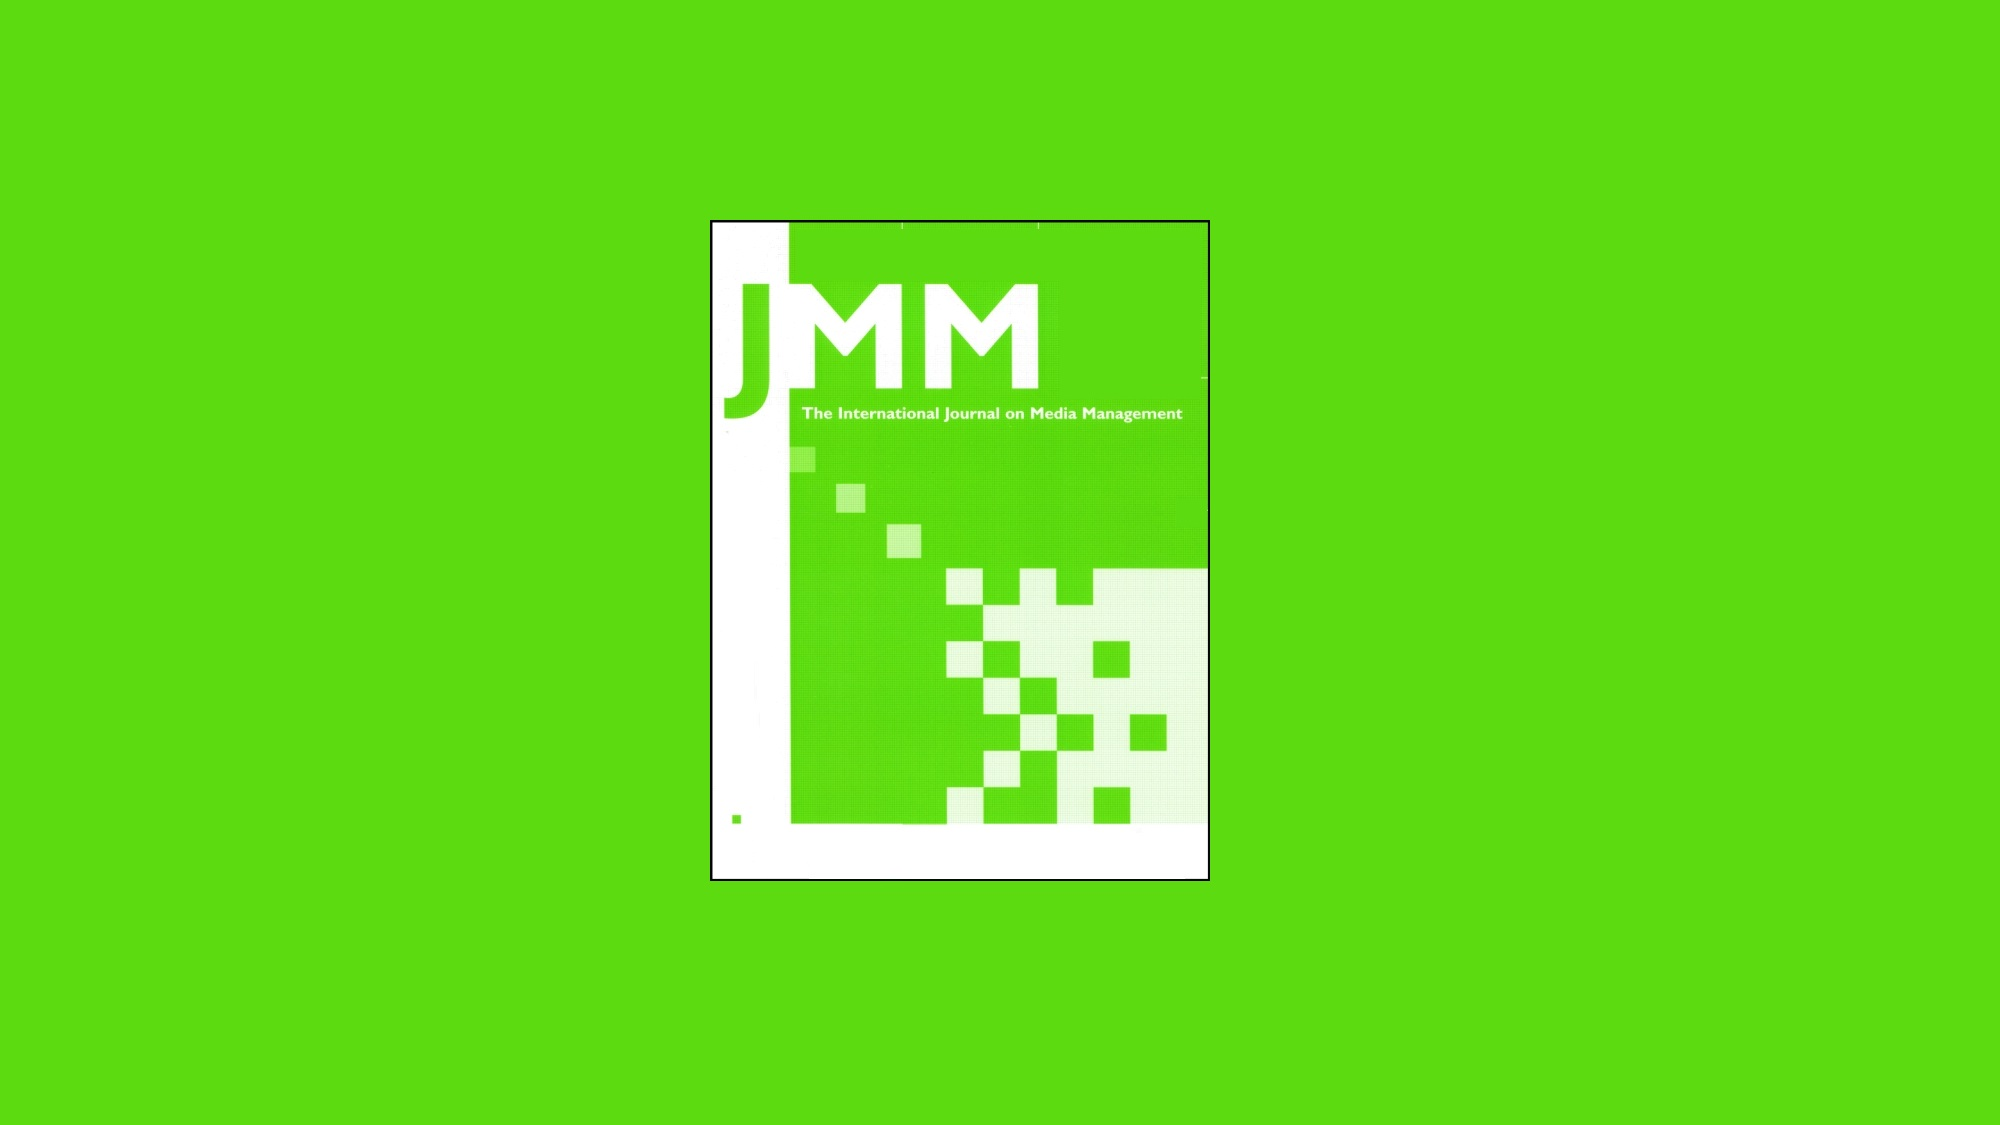 JMM Logo, white on bright green